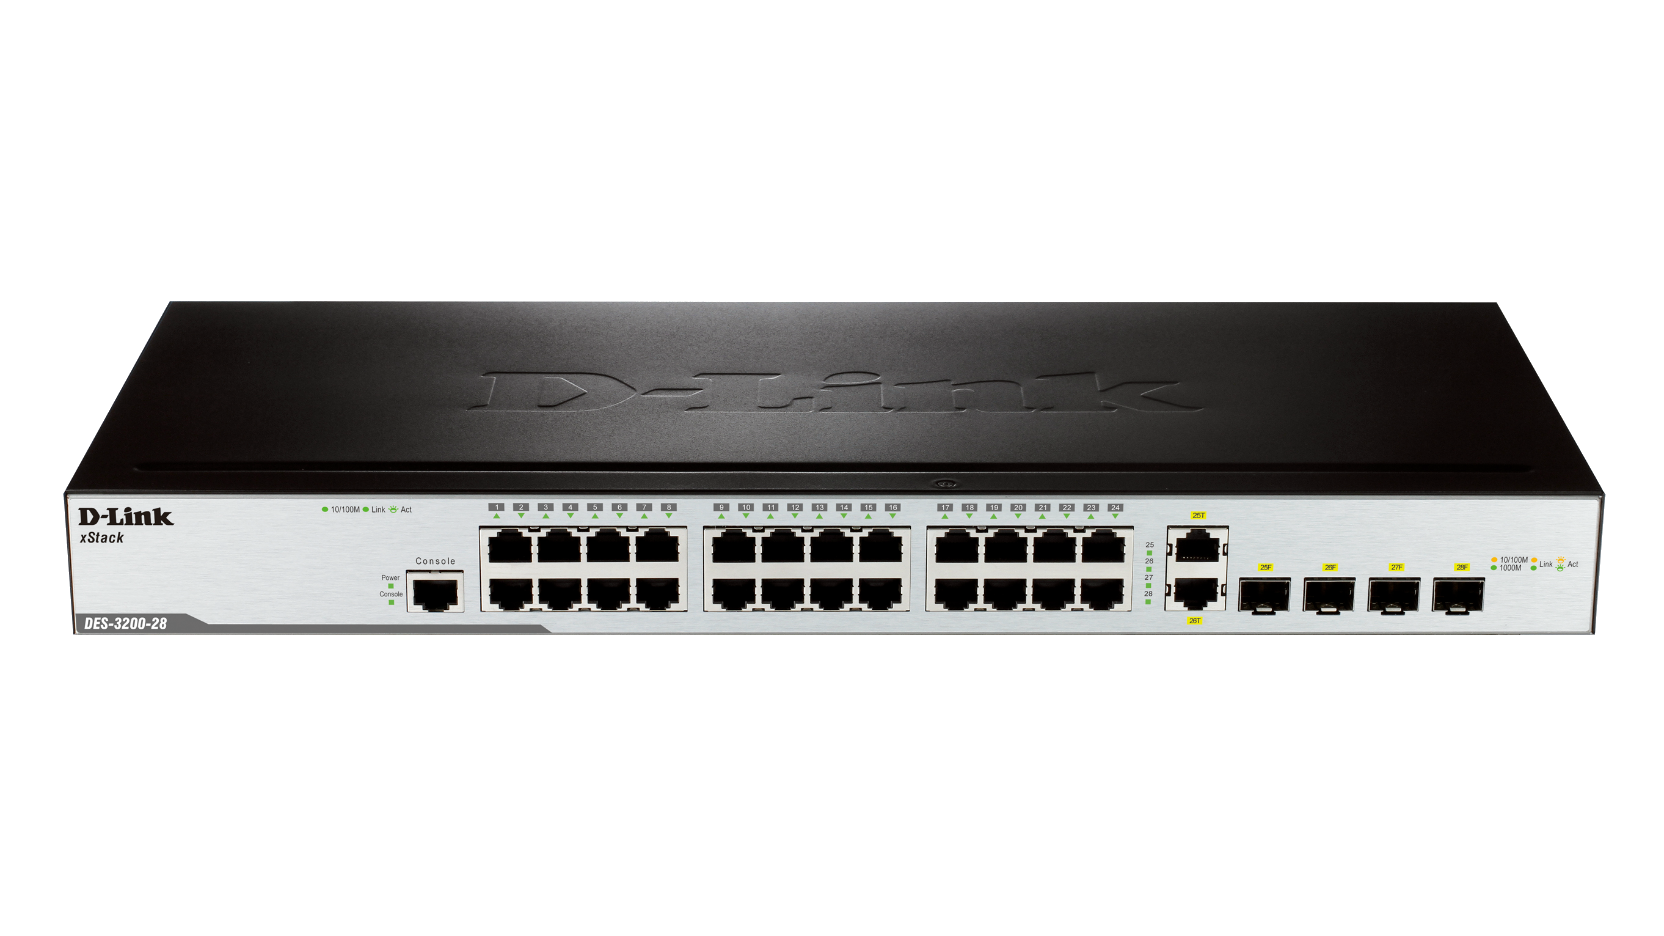 D-Link Systems Inc DES-3200-52 Series Layer 2 Managed Switch